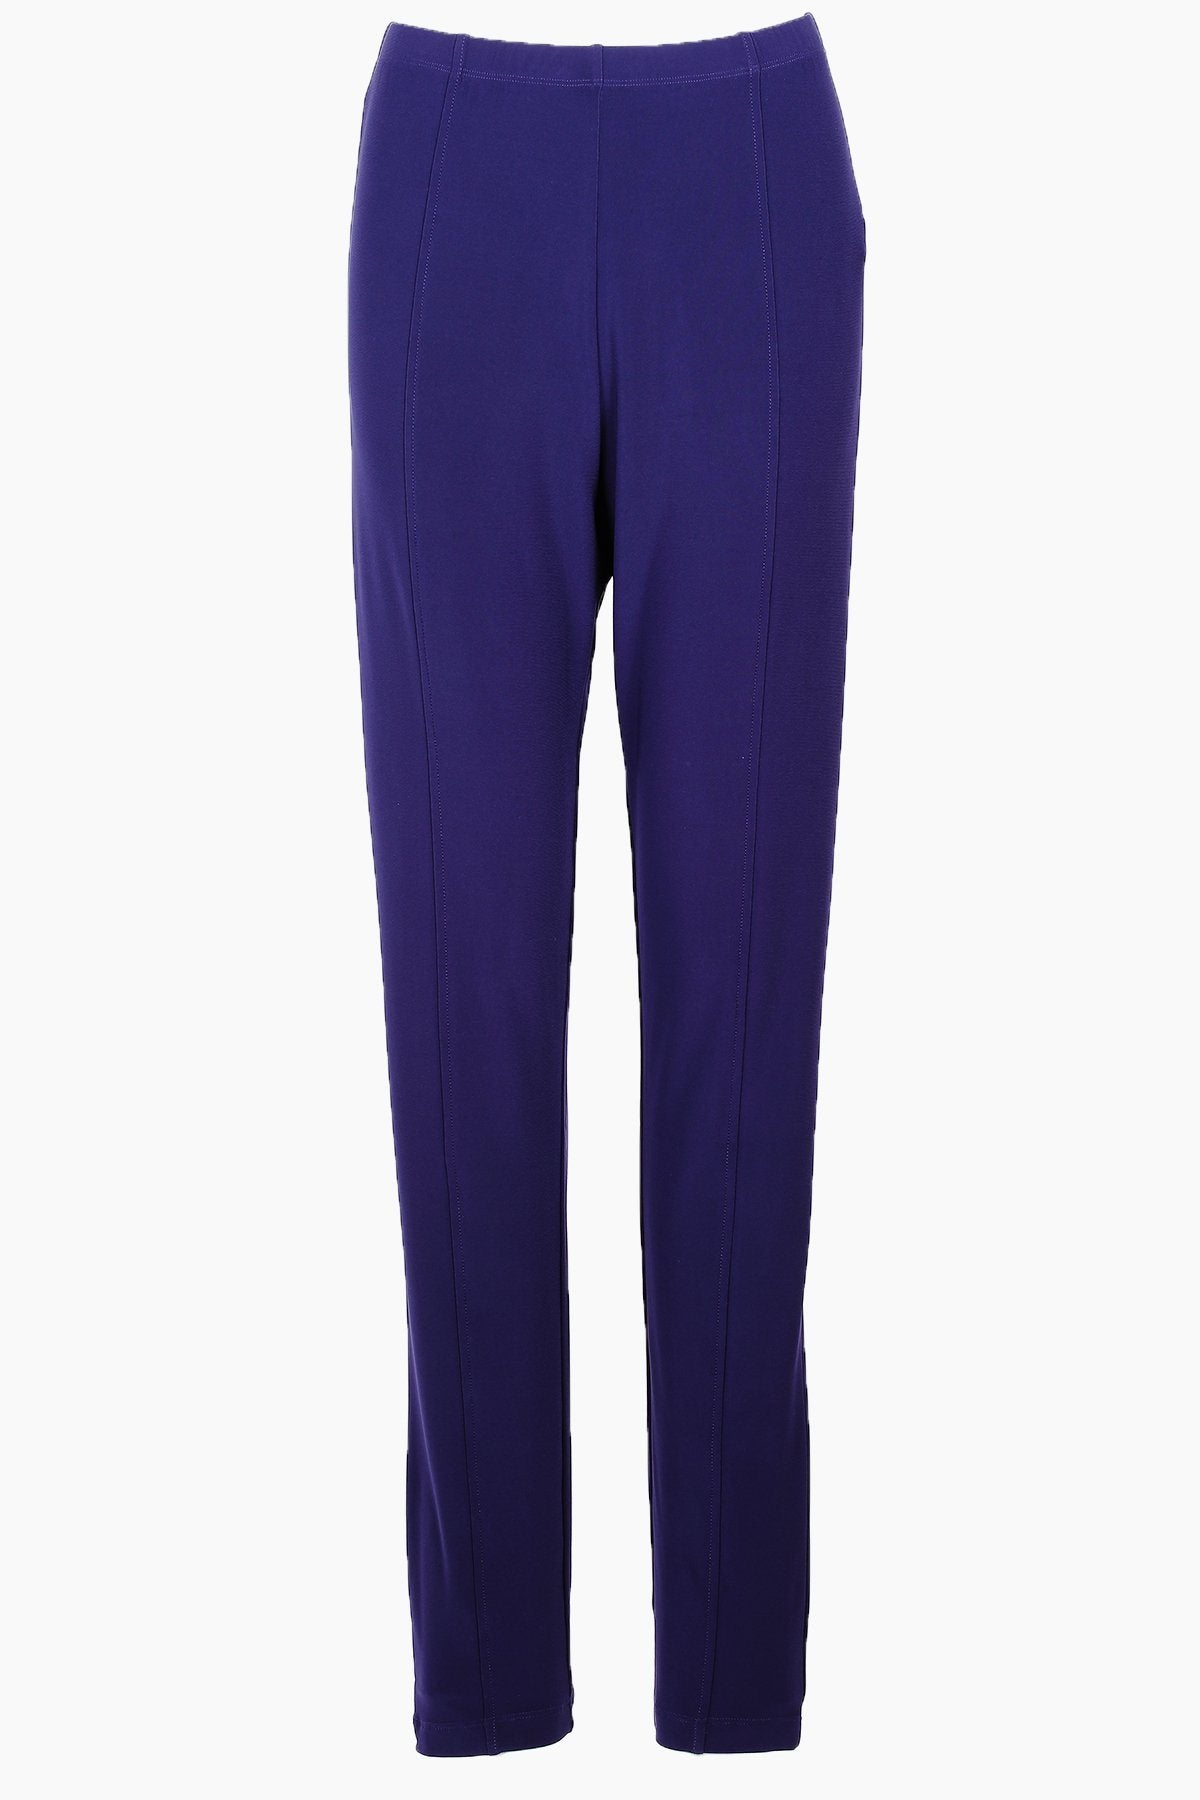 Women's Navy High Waisted Travel Pants with Front Seam Rosarini